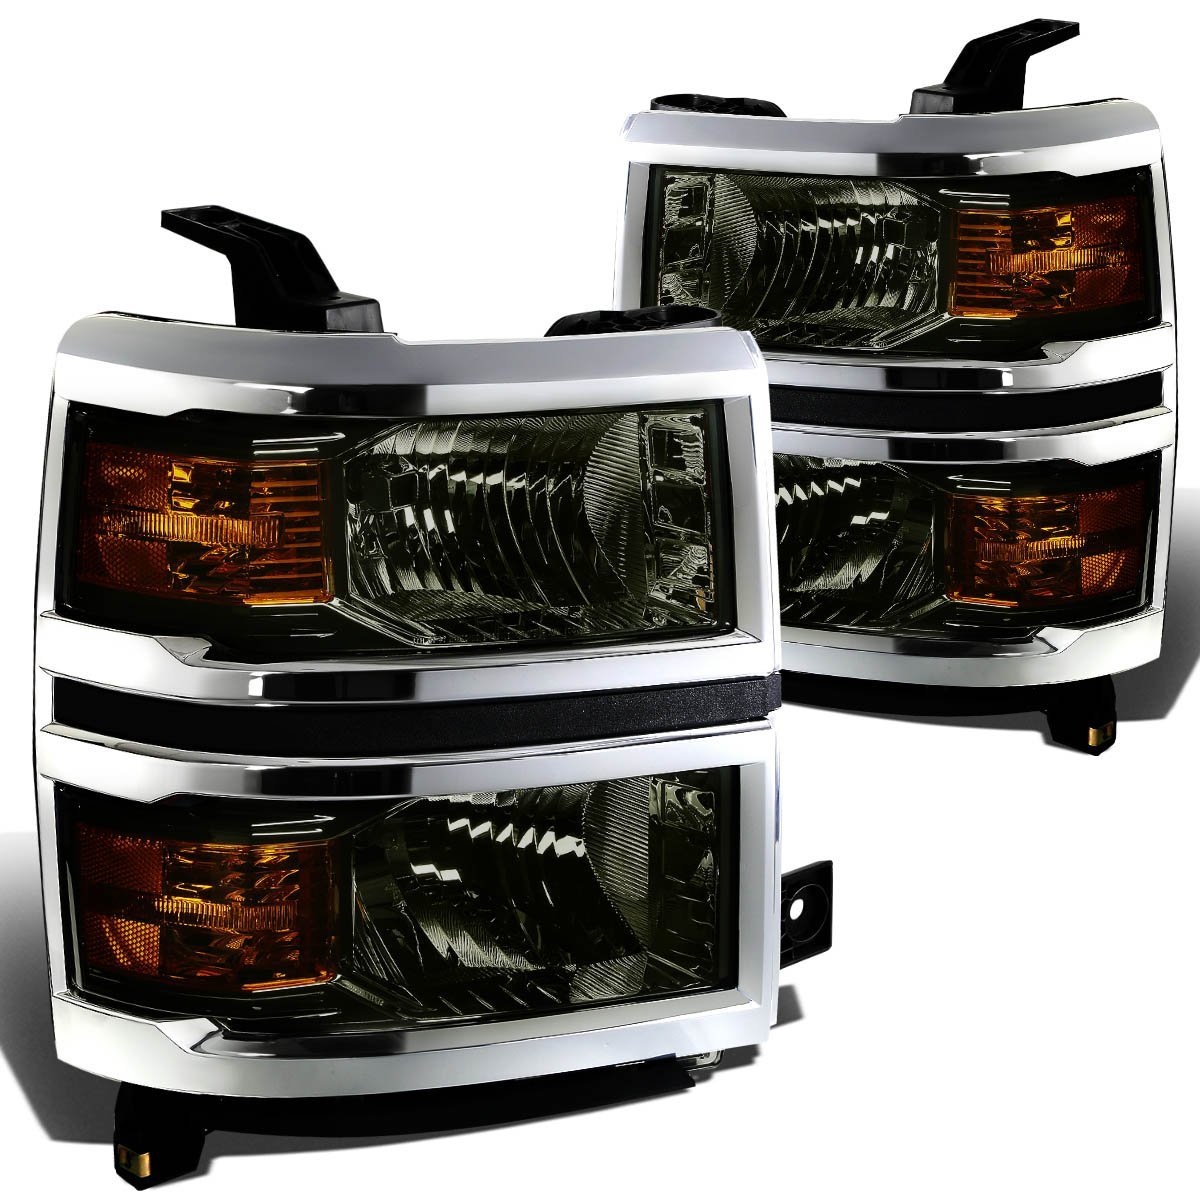 2014 silverado headlight upgrade autos post. Black Bedroom Furniture Sets. Home Design Ideas